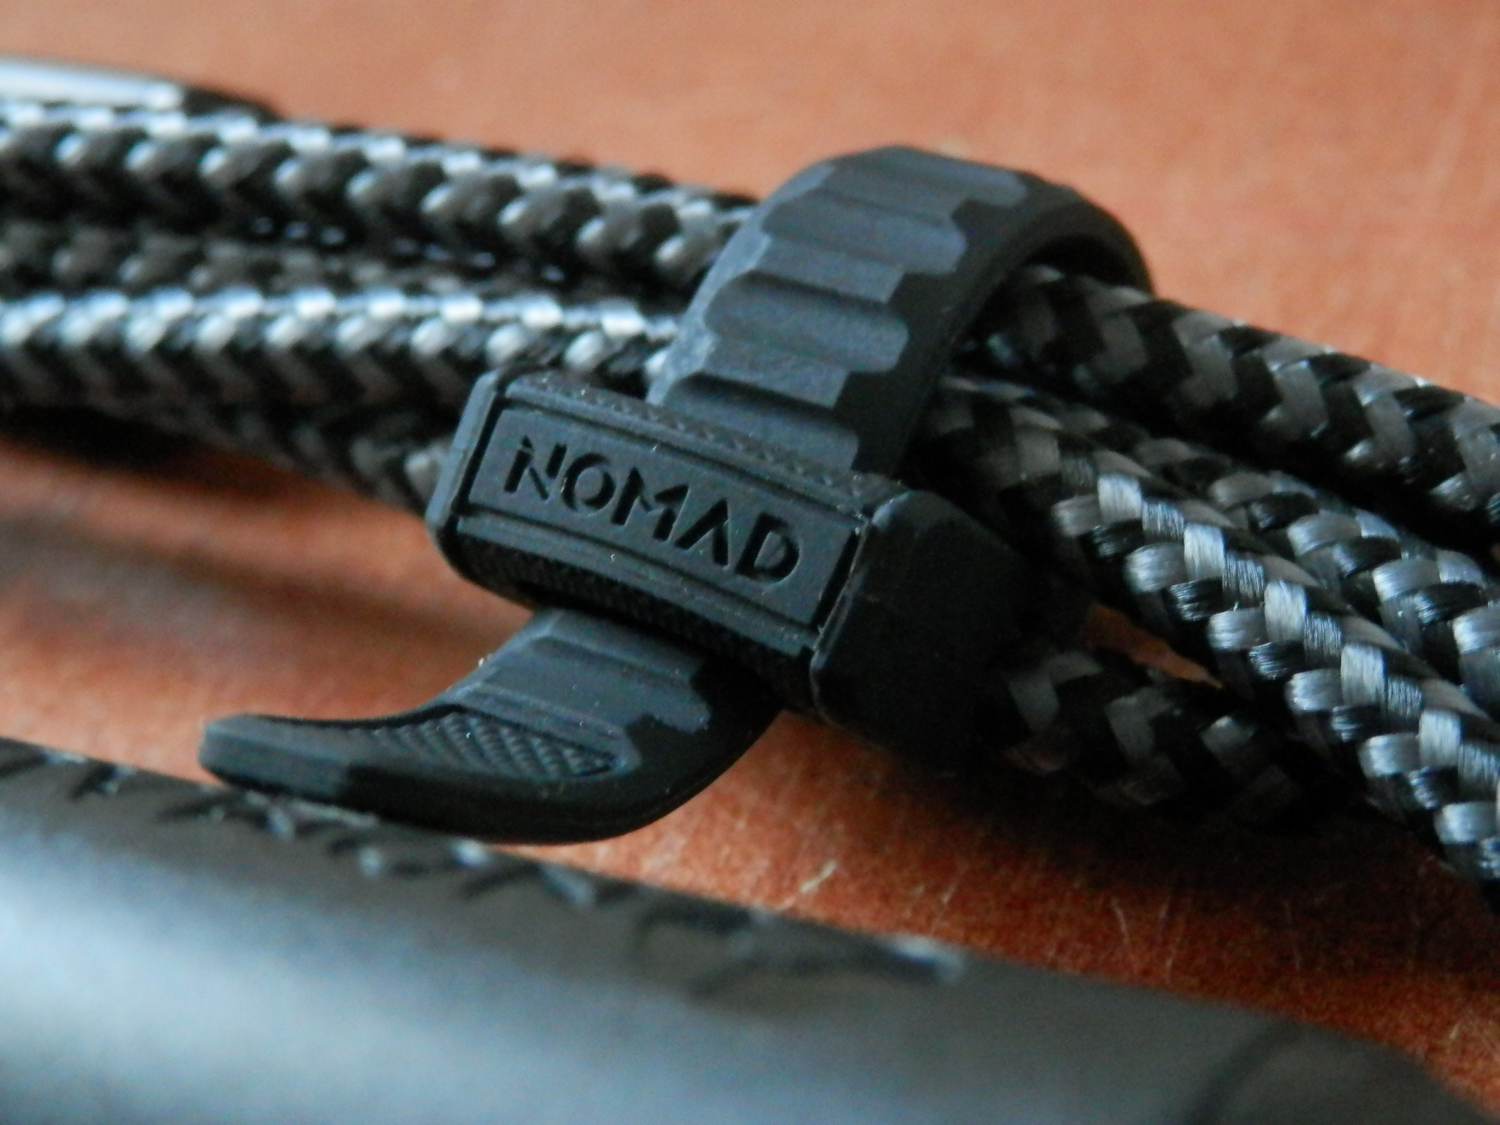 Nomad S New Lightning Cables Cross Durability With Function